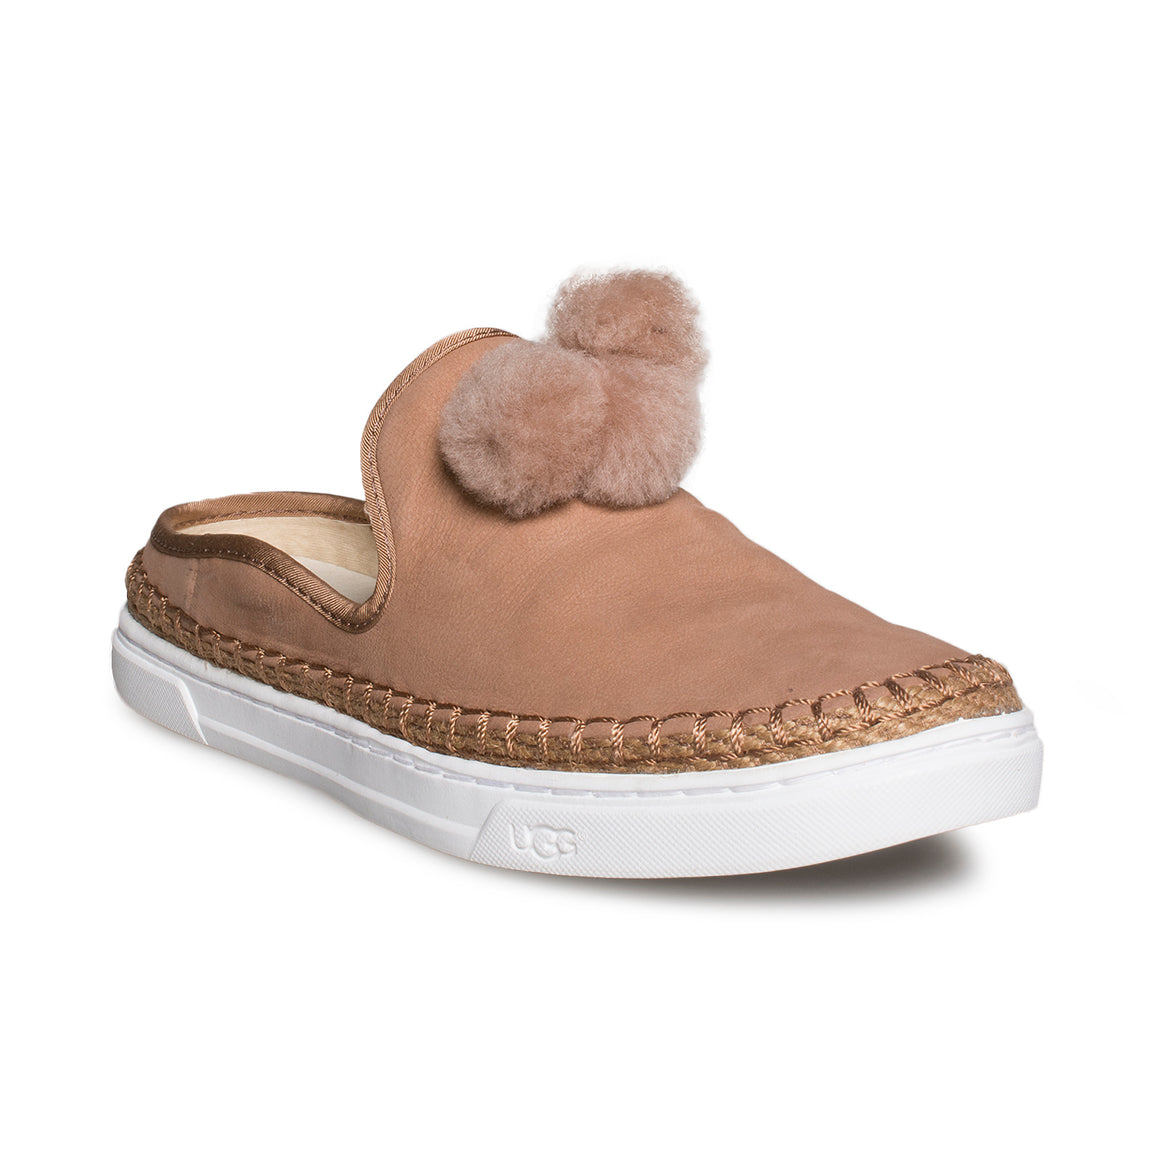 UGG Puff Slip On Sandalwood Shoes - Women's